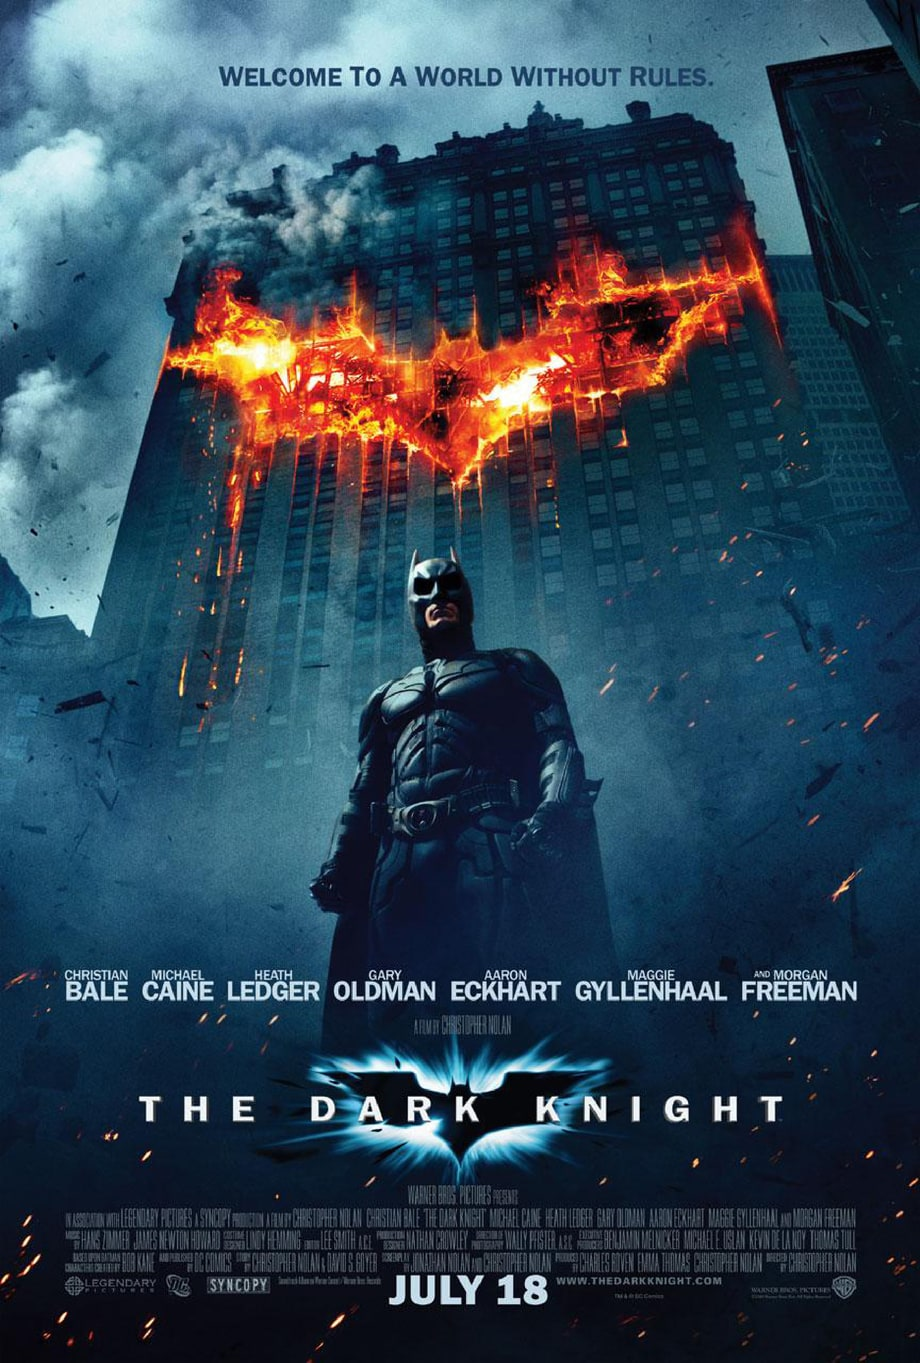 1. 'The Dark Knight'